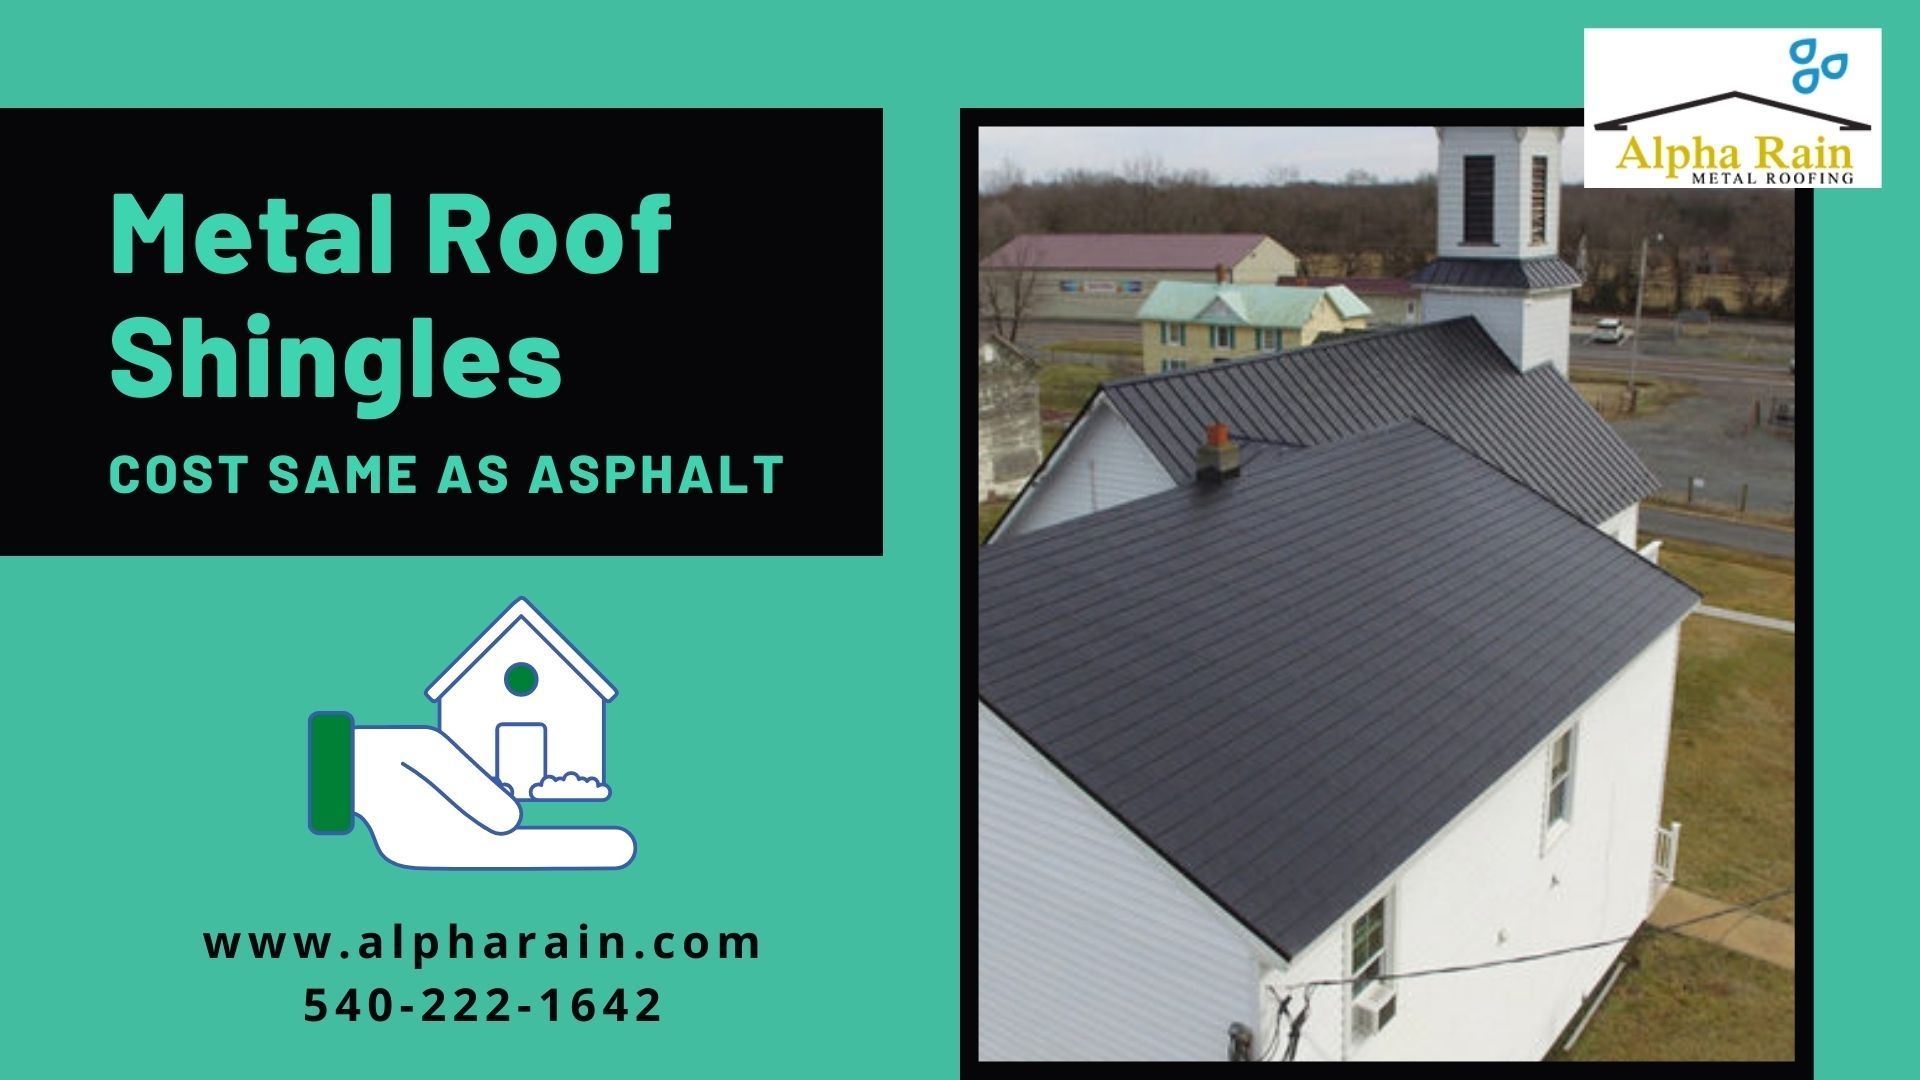 Do You Know Metal Roof Shingles Are Virtually Free In 2020 Metal Shingle Roof Metal Roof Roof Shingles